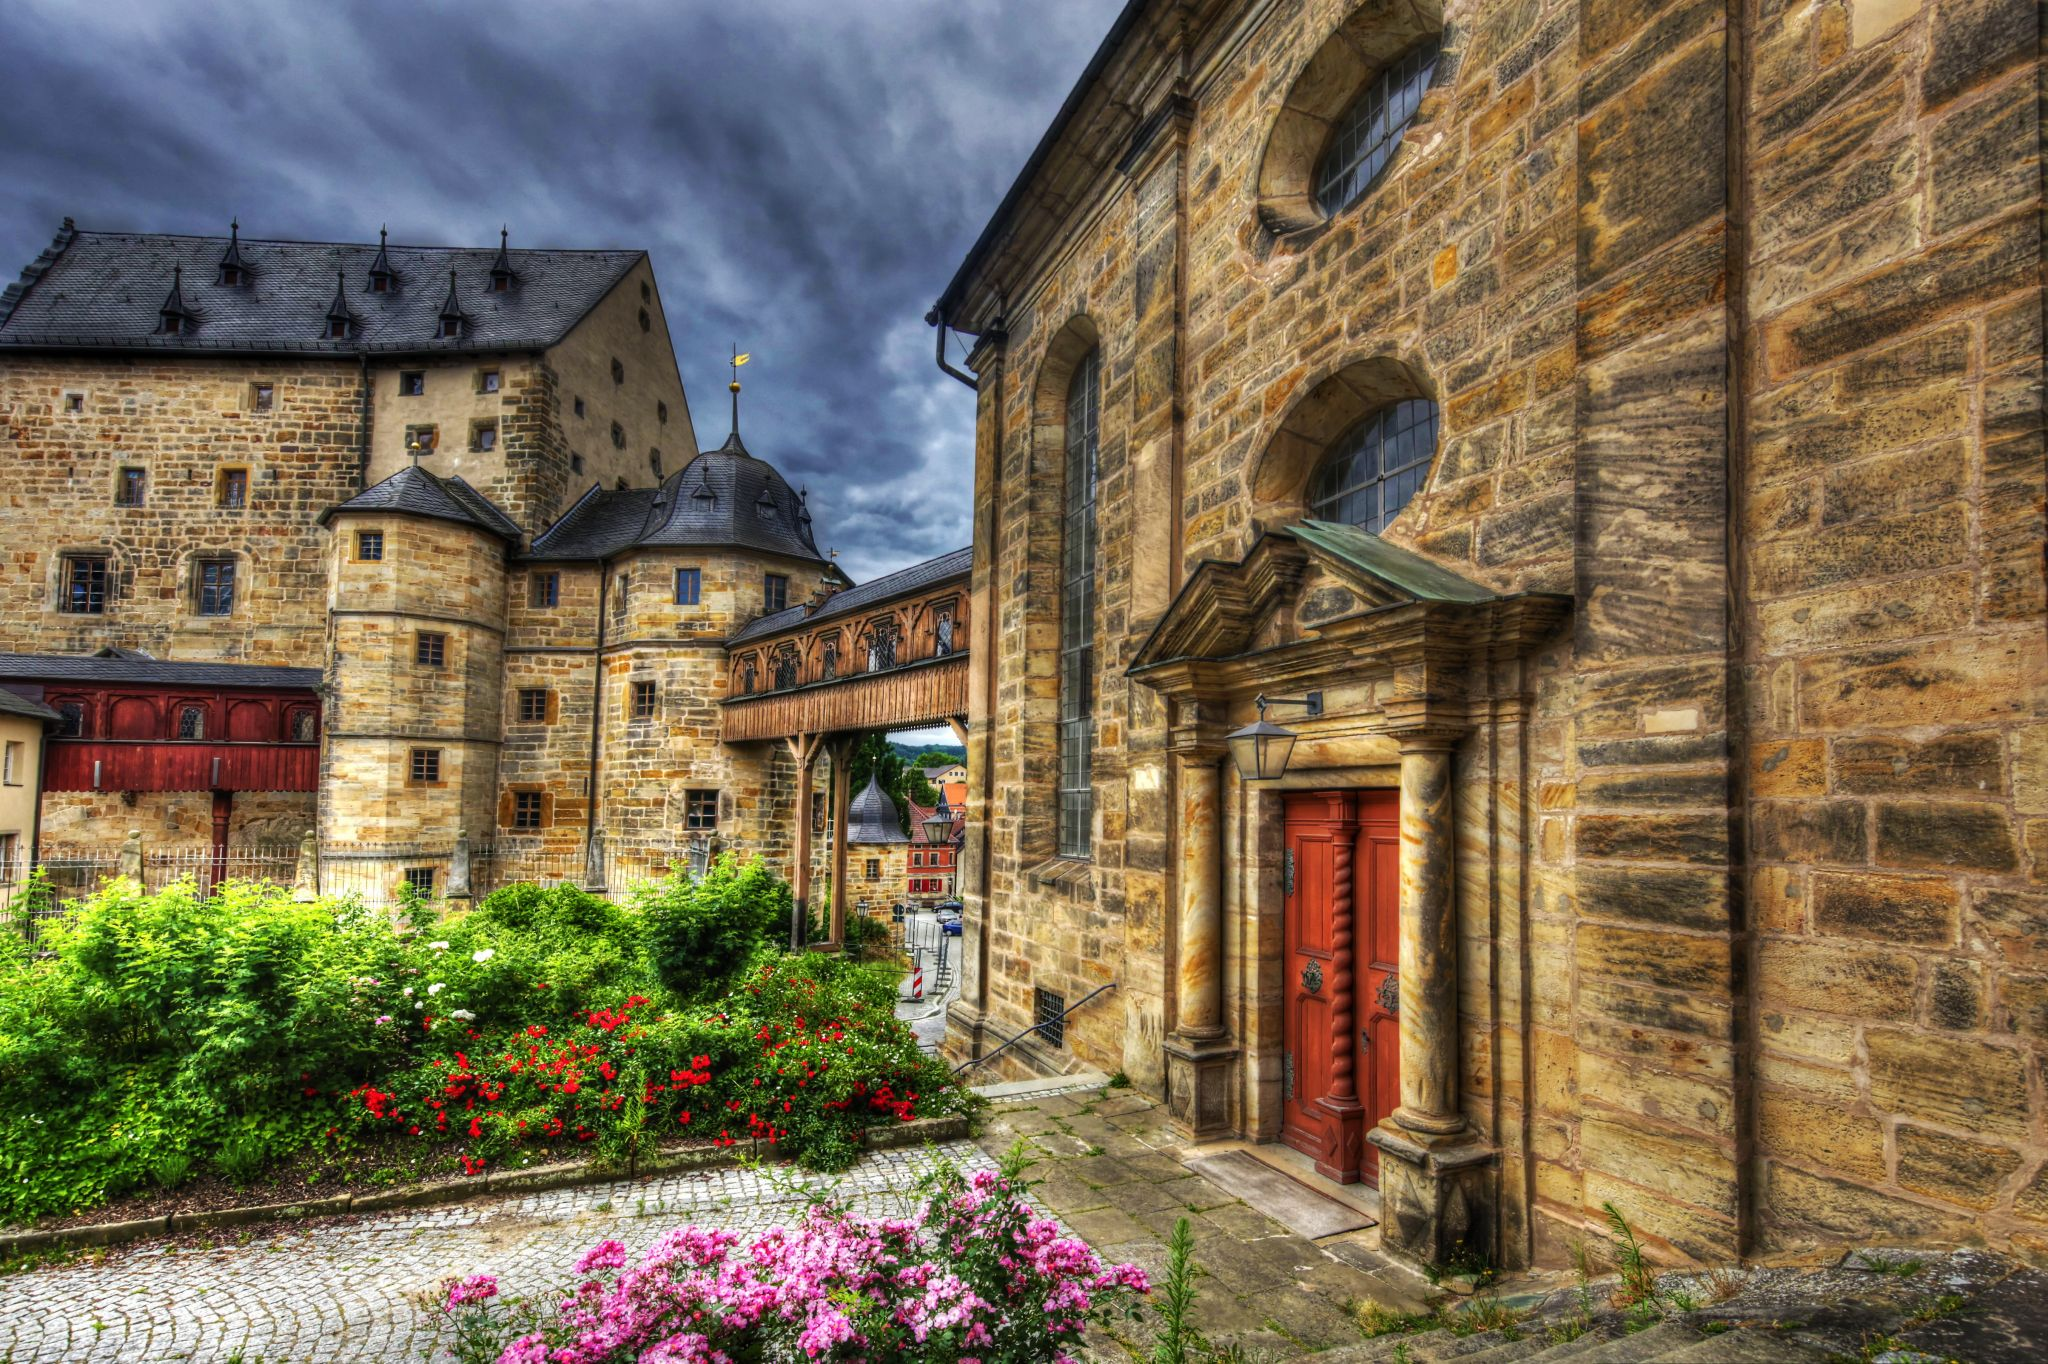 The City Center of Thurnau (Upper Franconia), Germany